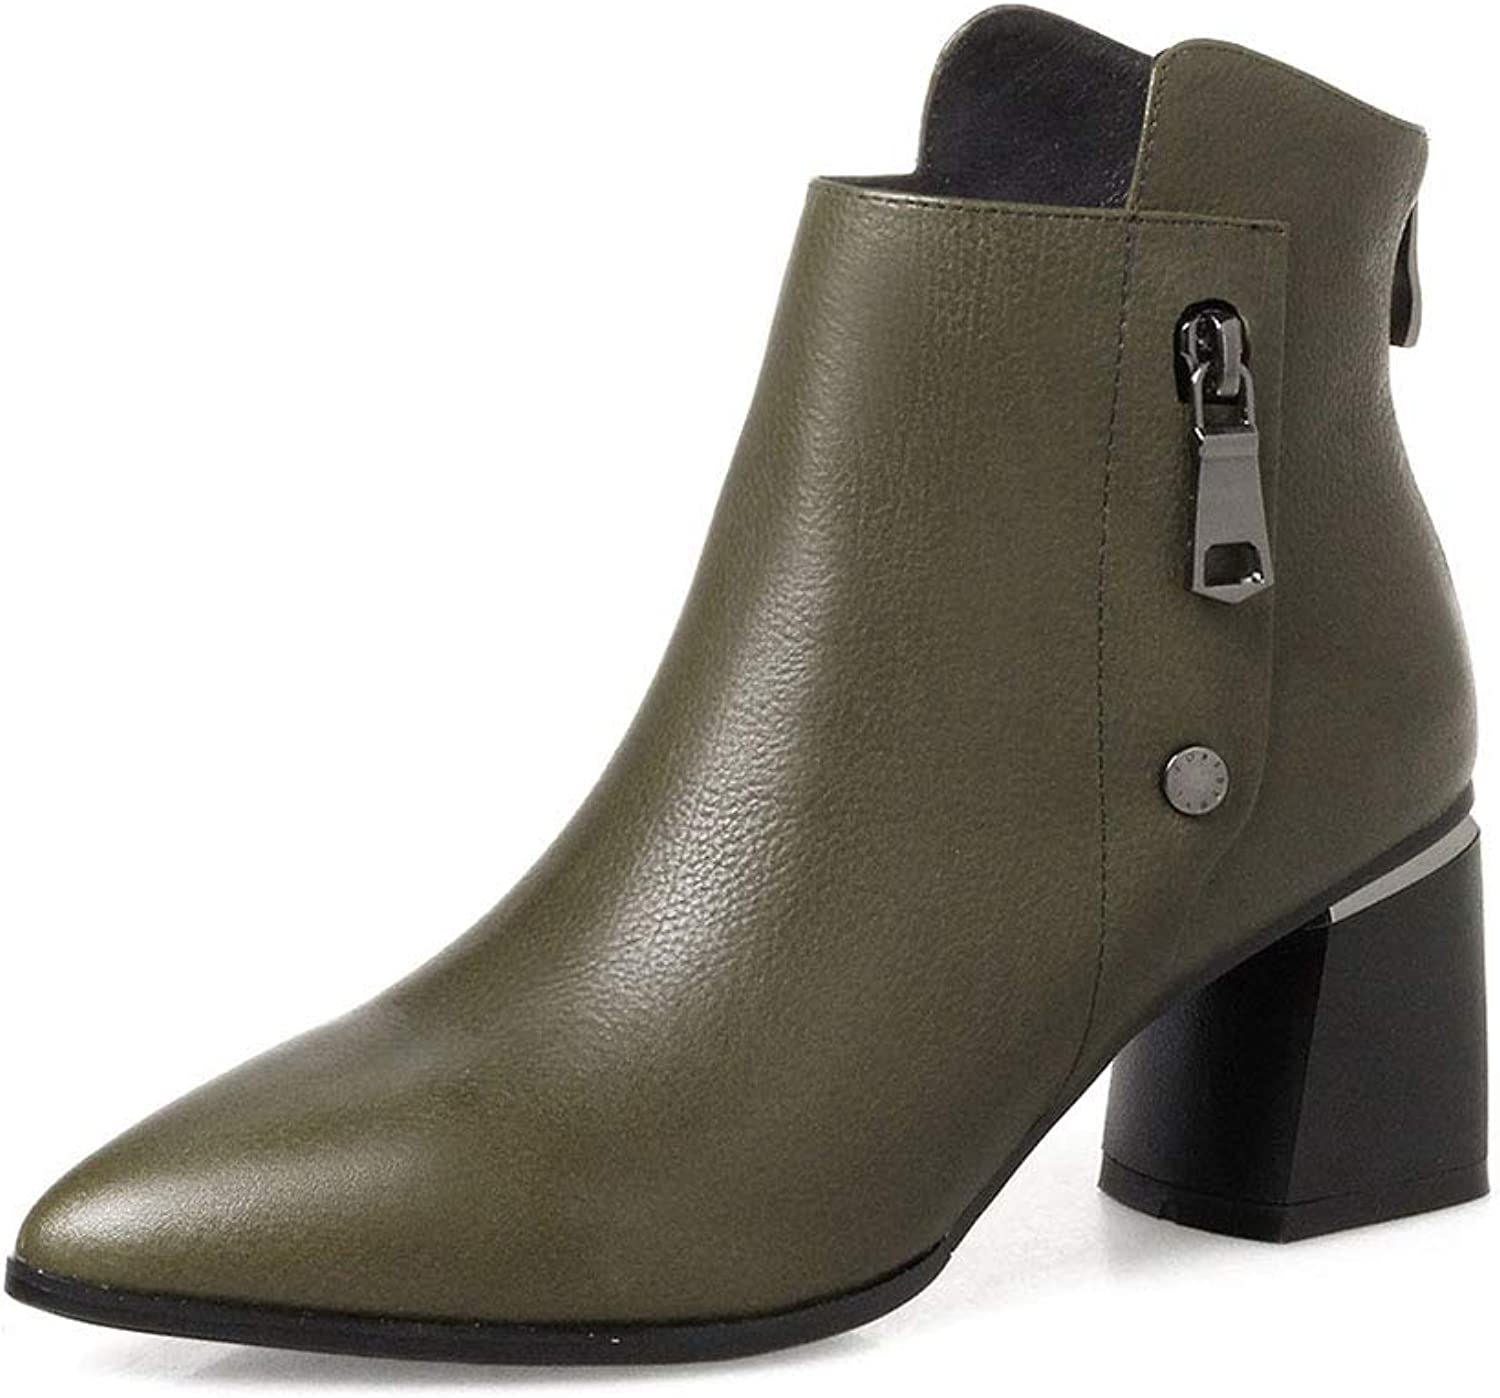 Women's Ankle Boots, Leather Pointed High Heel Boots Rough High Heels Fashion Martin Boots Wedding Party & Evening Formal shoes (color   Green, Size   34)